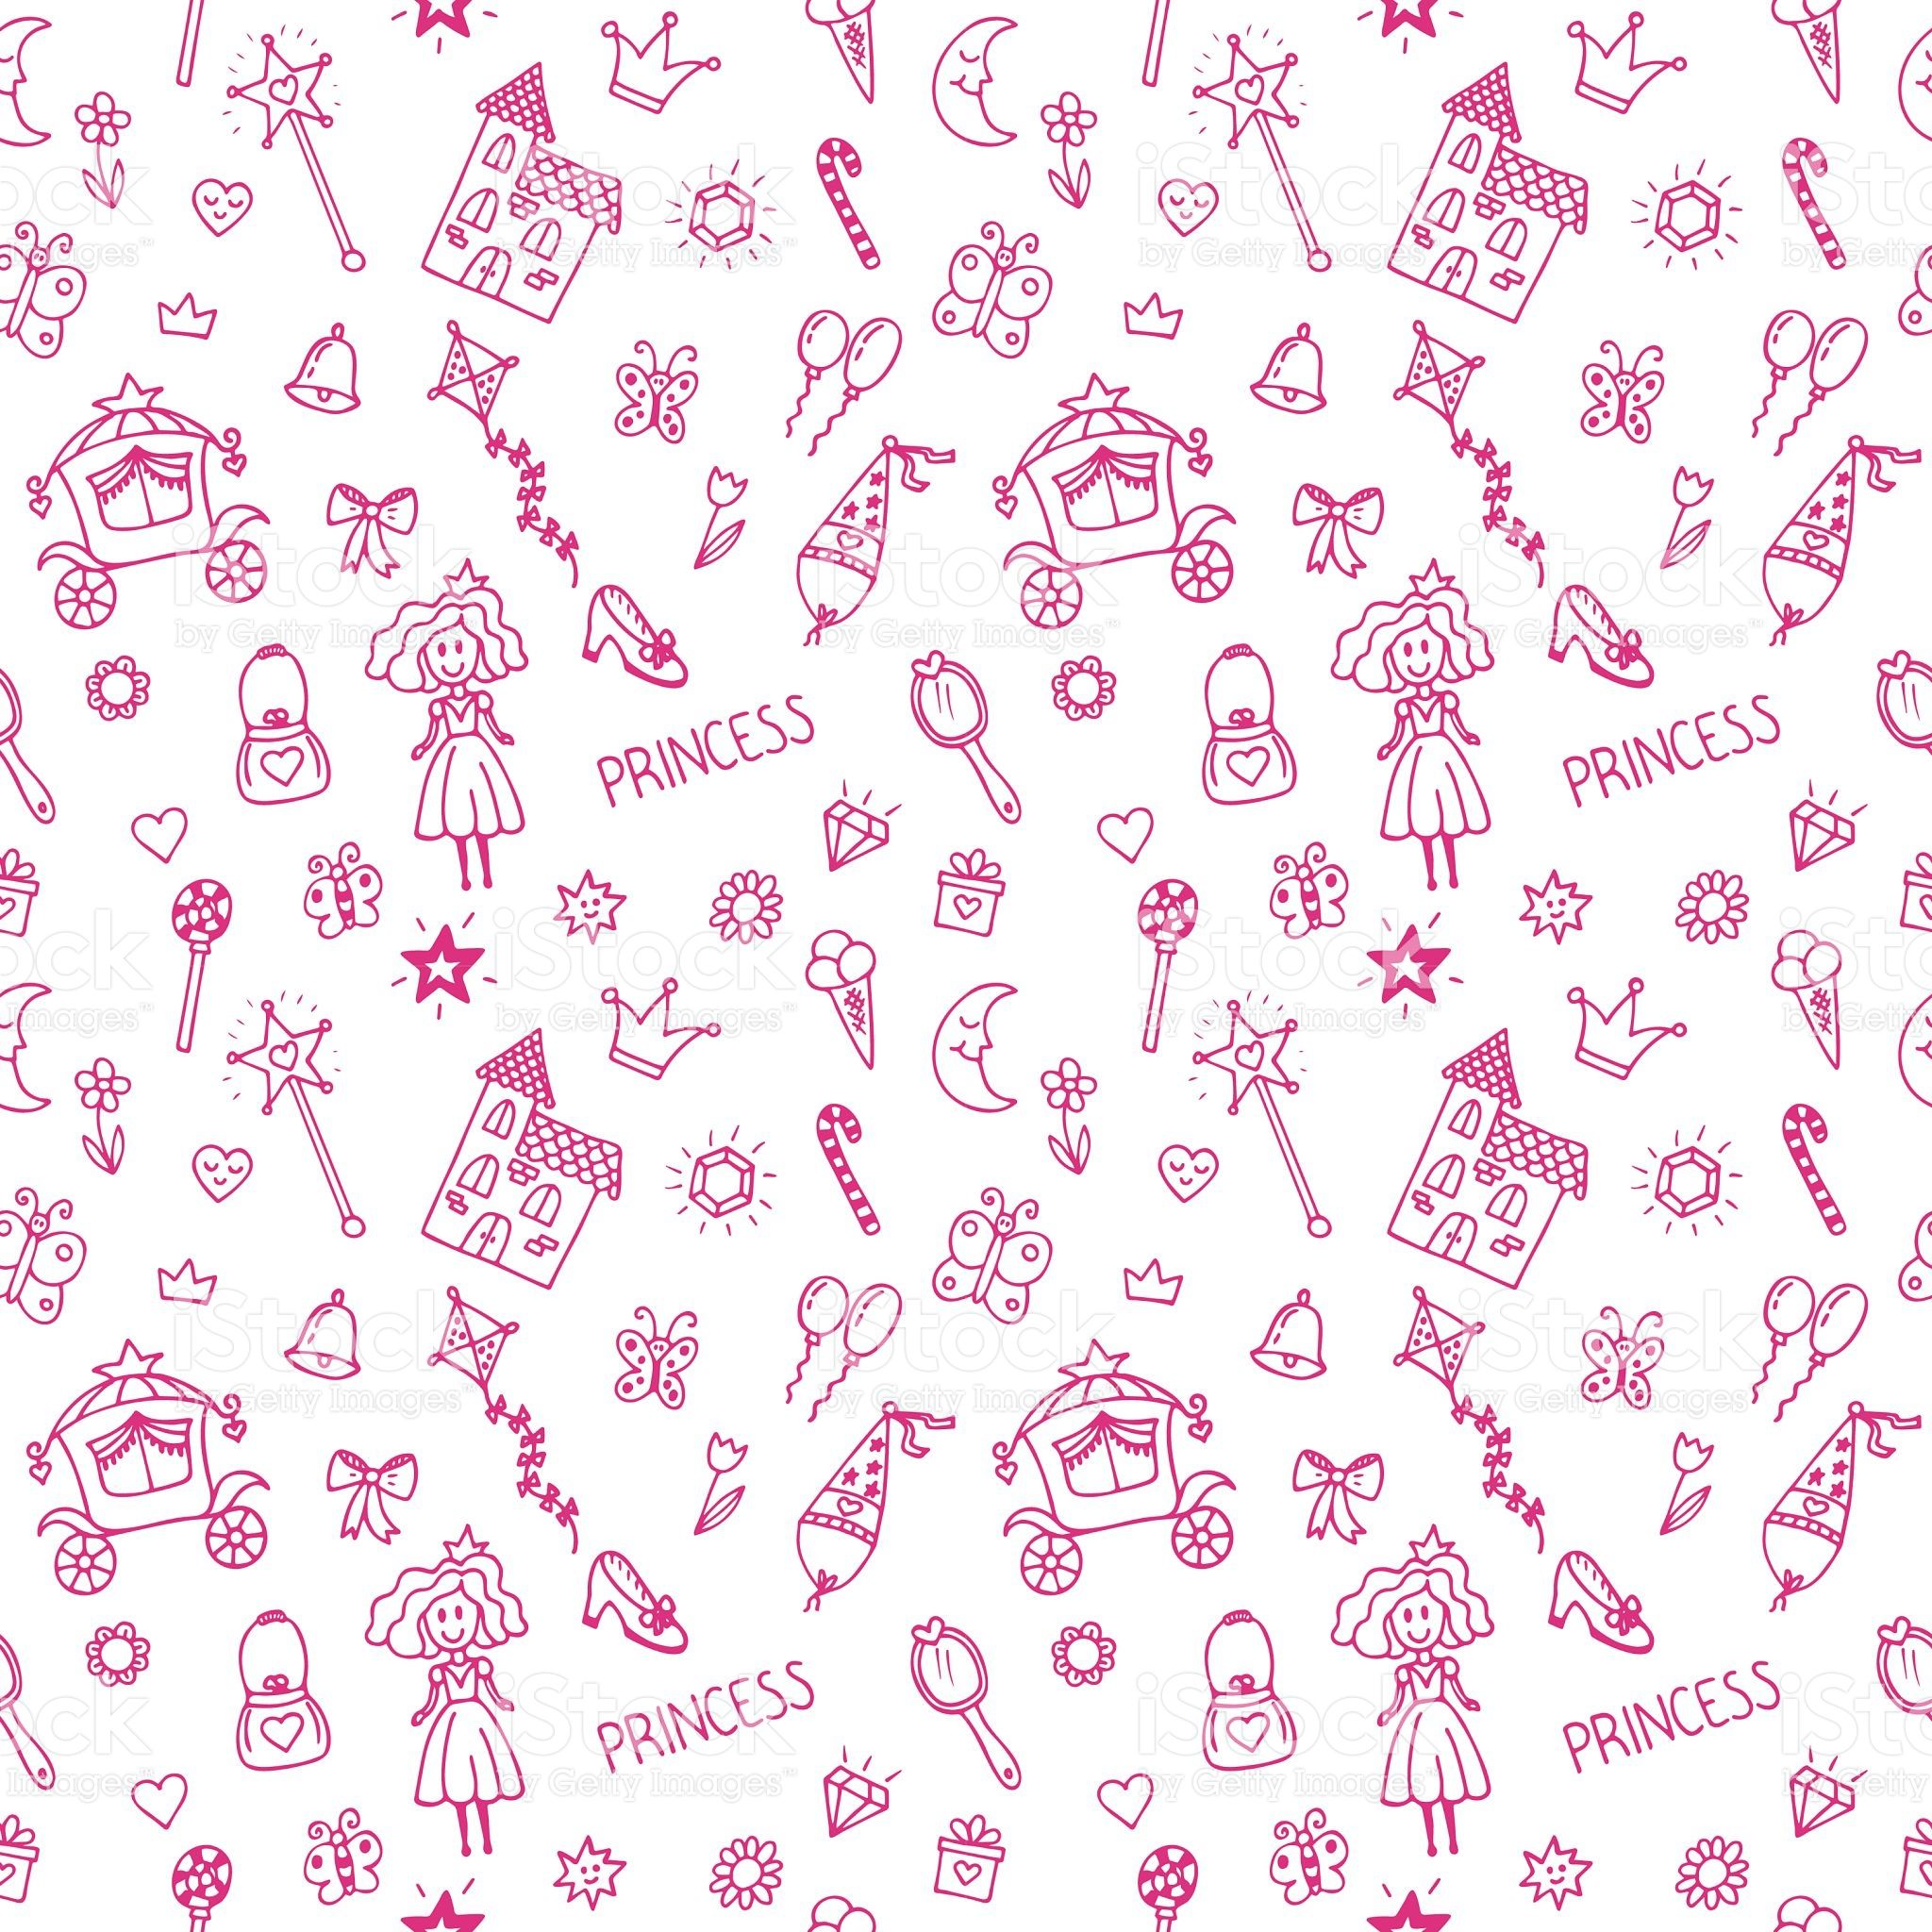 Hand Drawn Seamless Pattern With Princess Doodle Design Elements